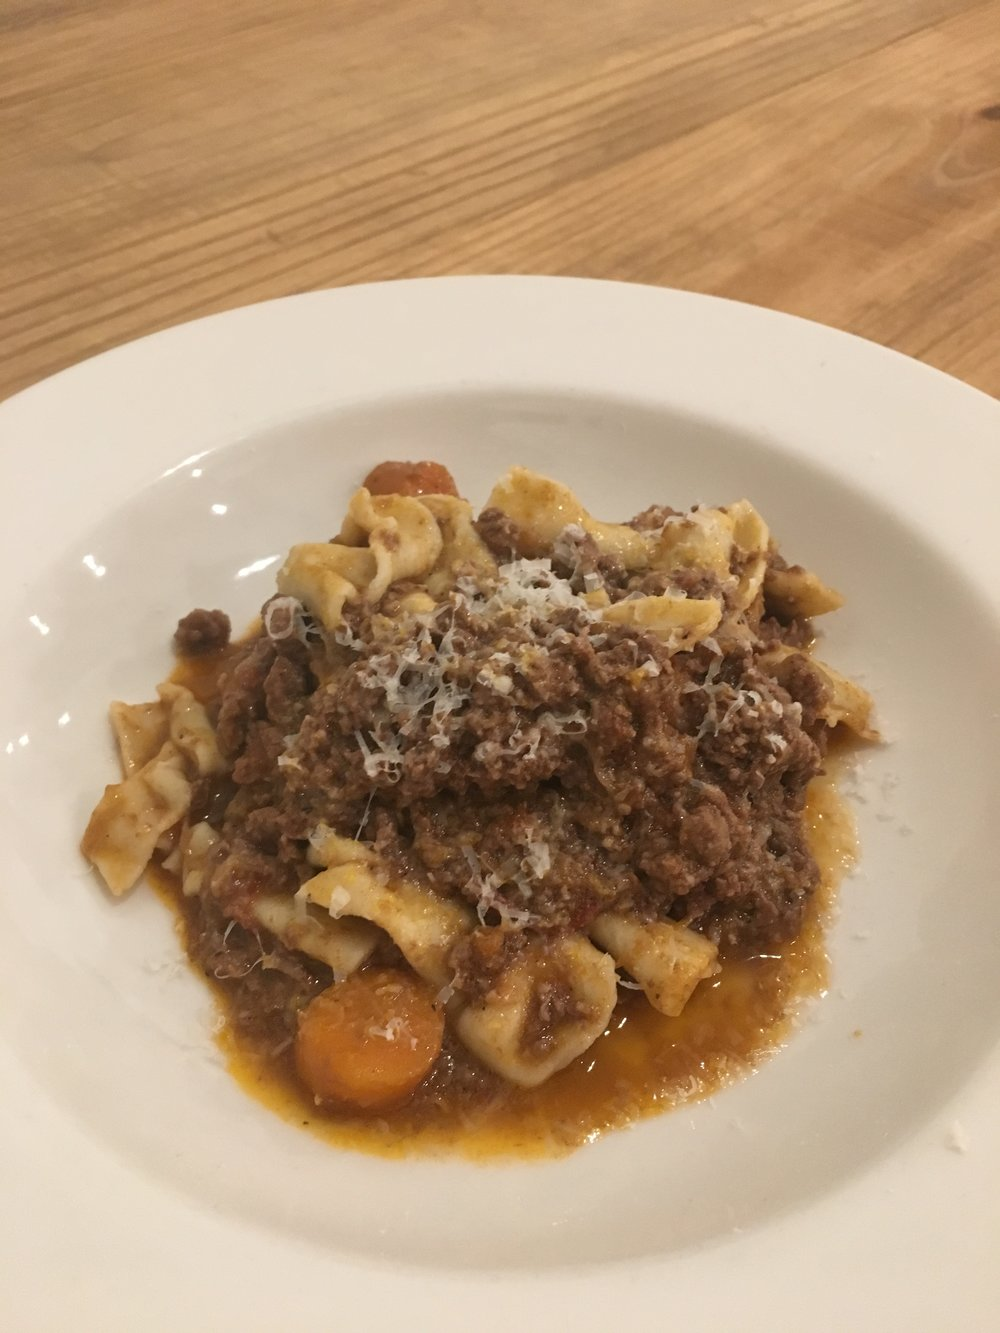 FOURTH COURSE: LAMB BOLOGNESE SAUCE WITH FRESH PASTA